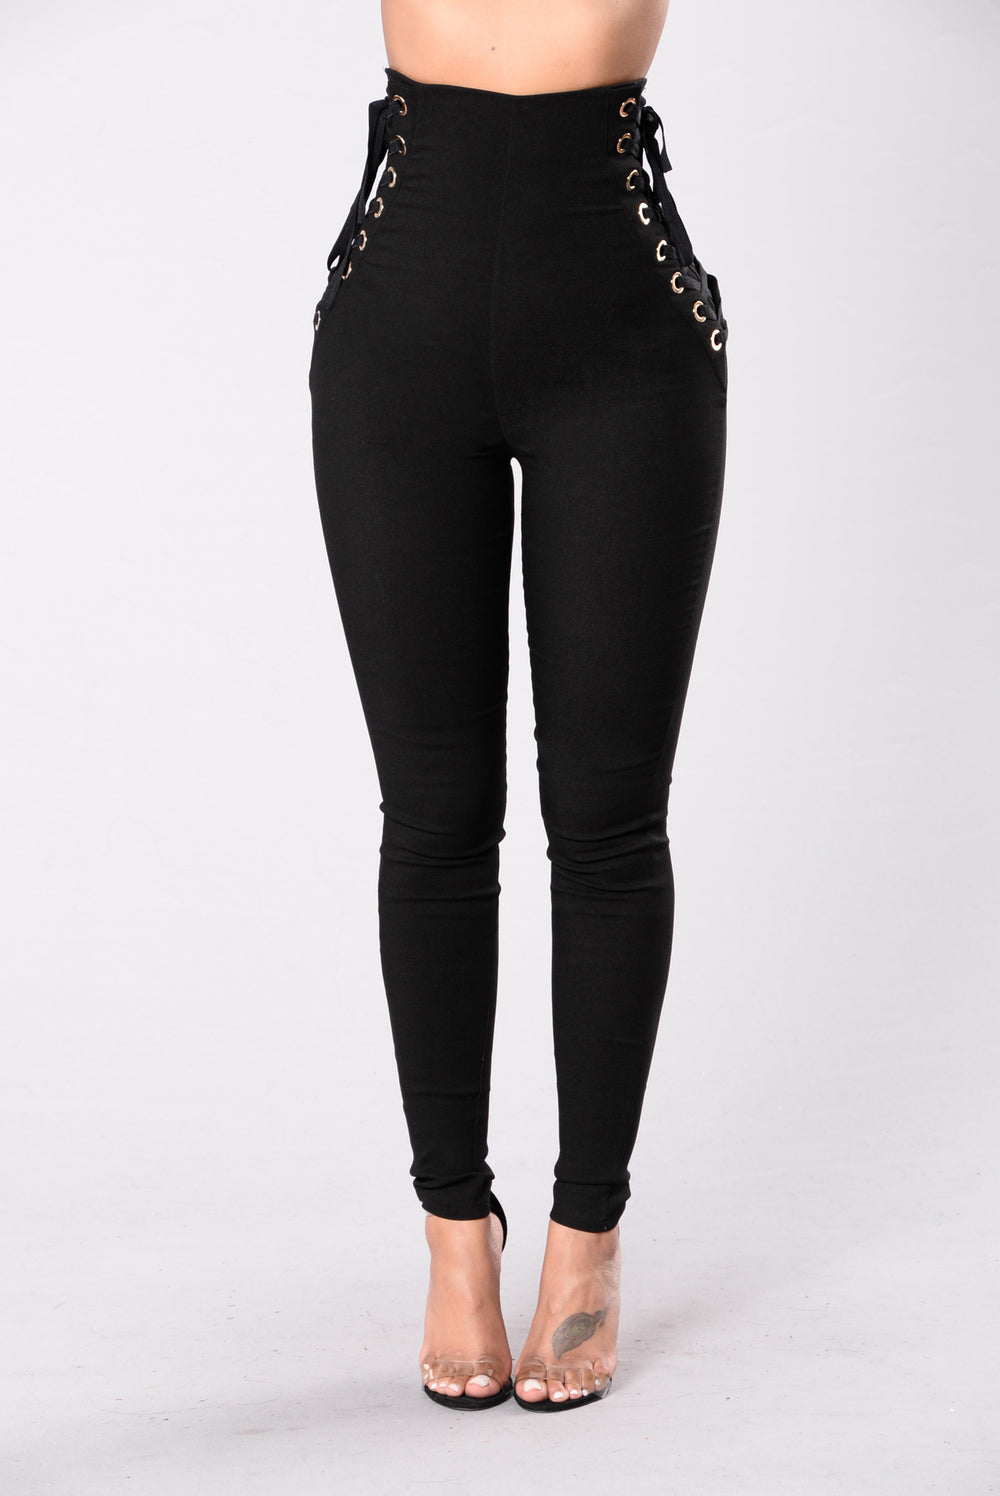 Pull Up Real Fast Pants - Black